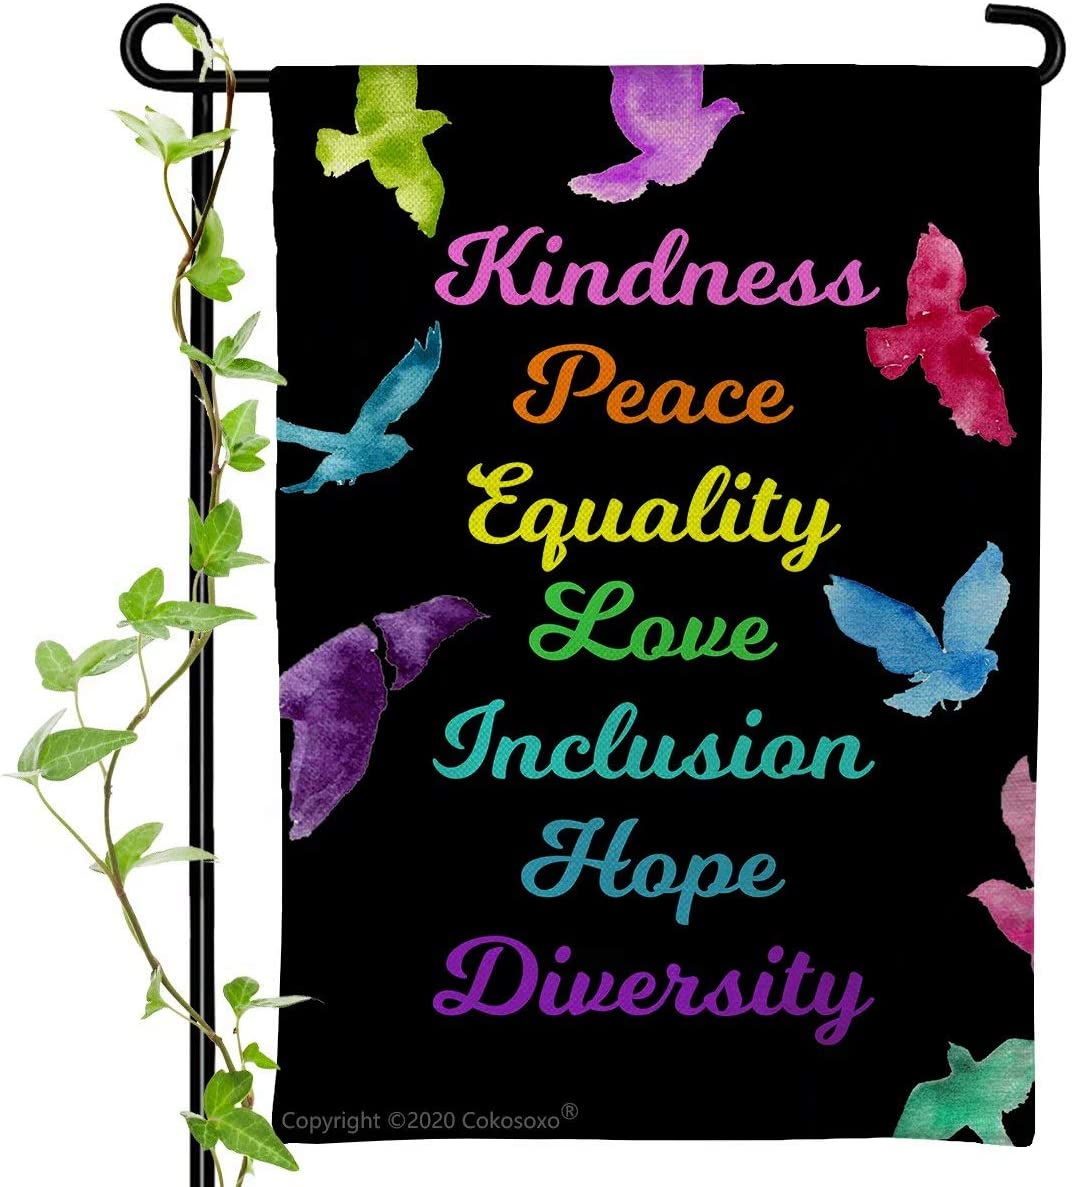 Cokosoxo Kindness Peace Equality Love Inclusion Hope Diversity Garden Flag-Colorful Peace Dove KindnessisEverything- Burlap Vertical Double Sided Sign for Yard Lawn Patio 12x18 inch